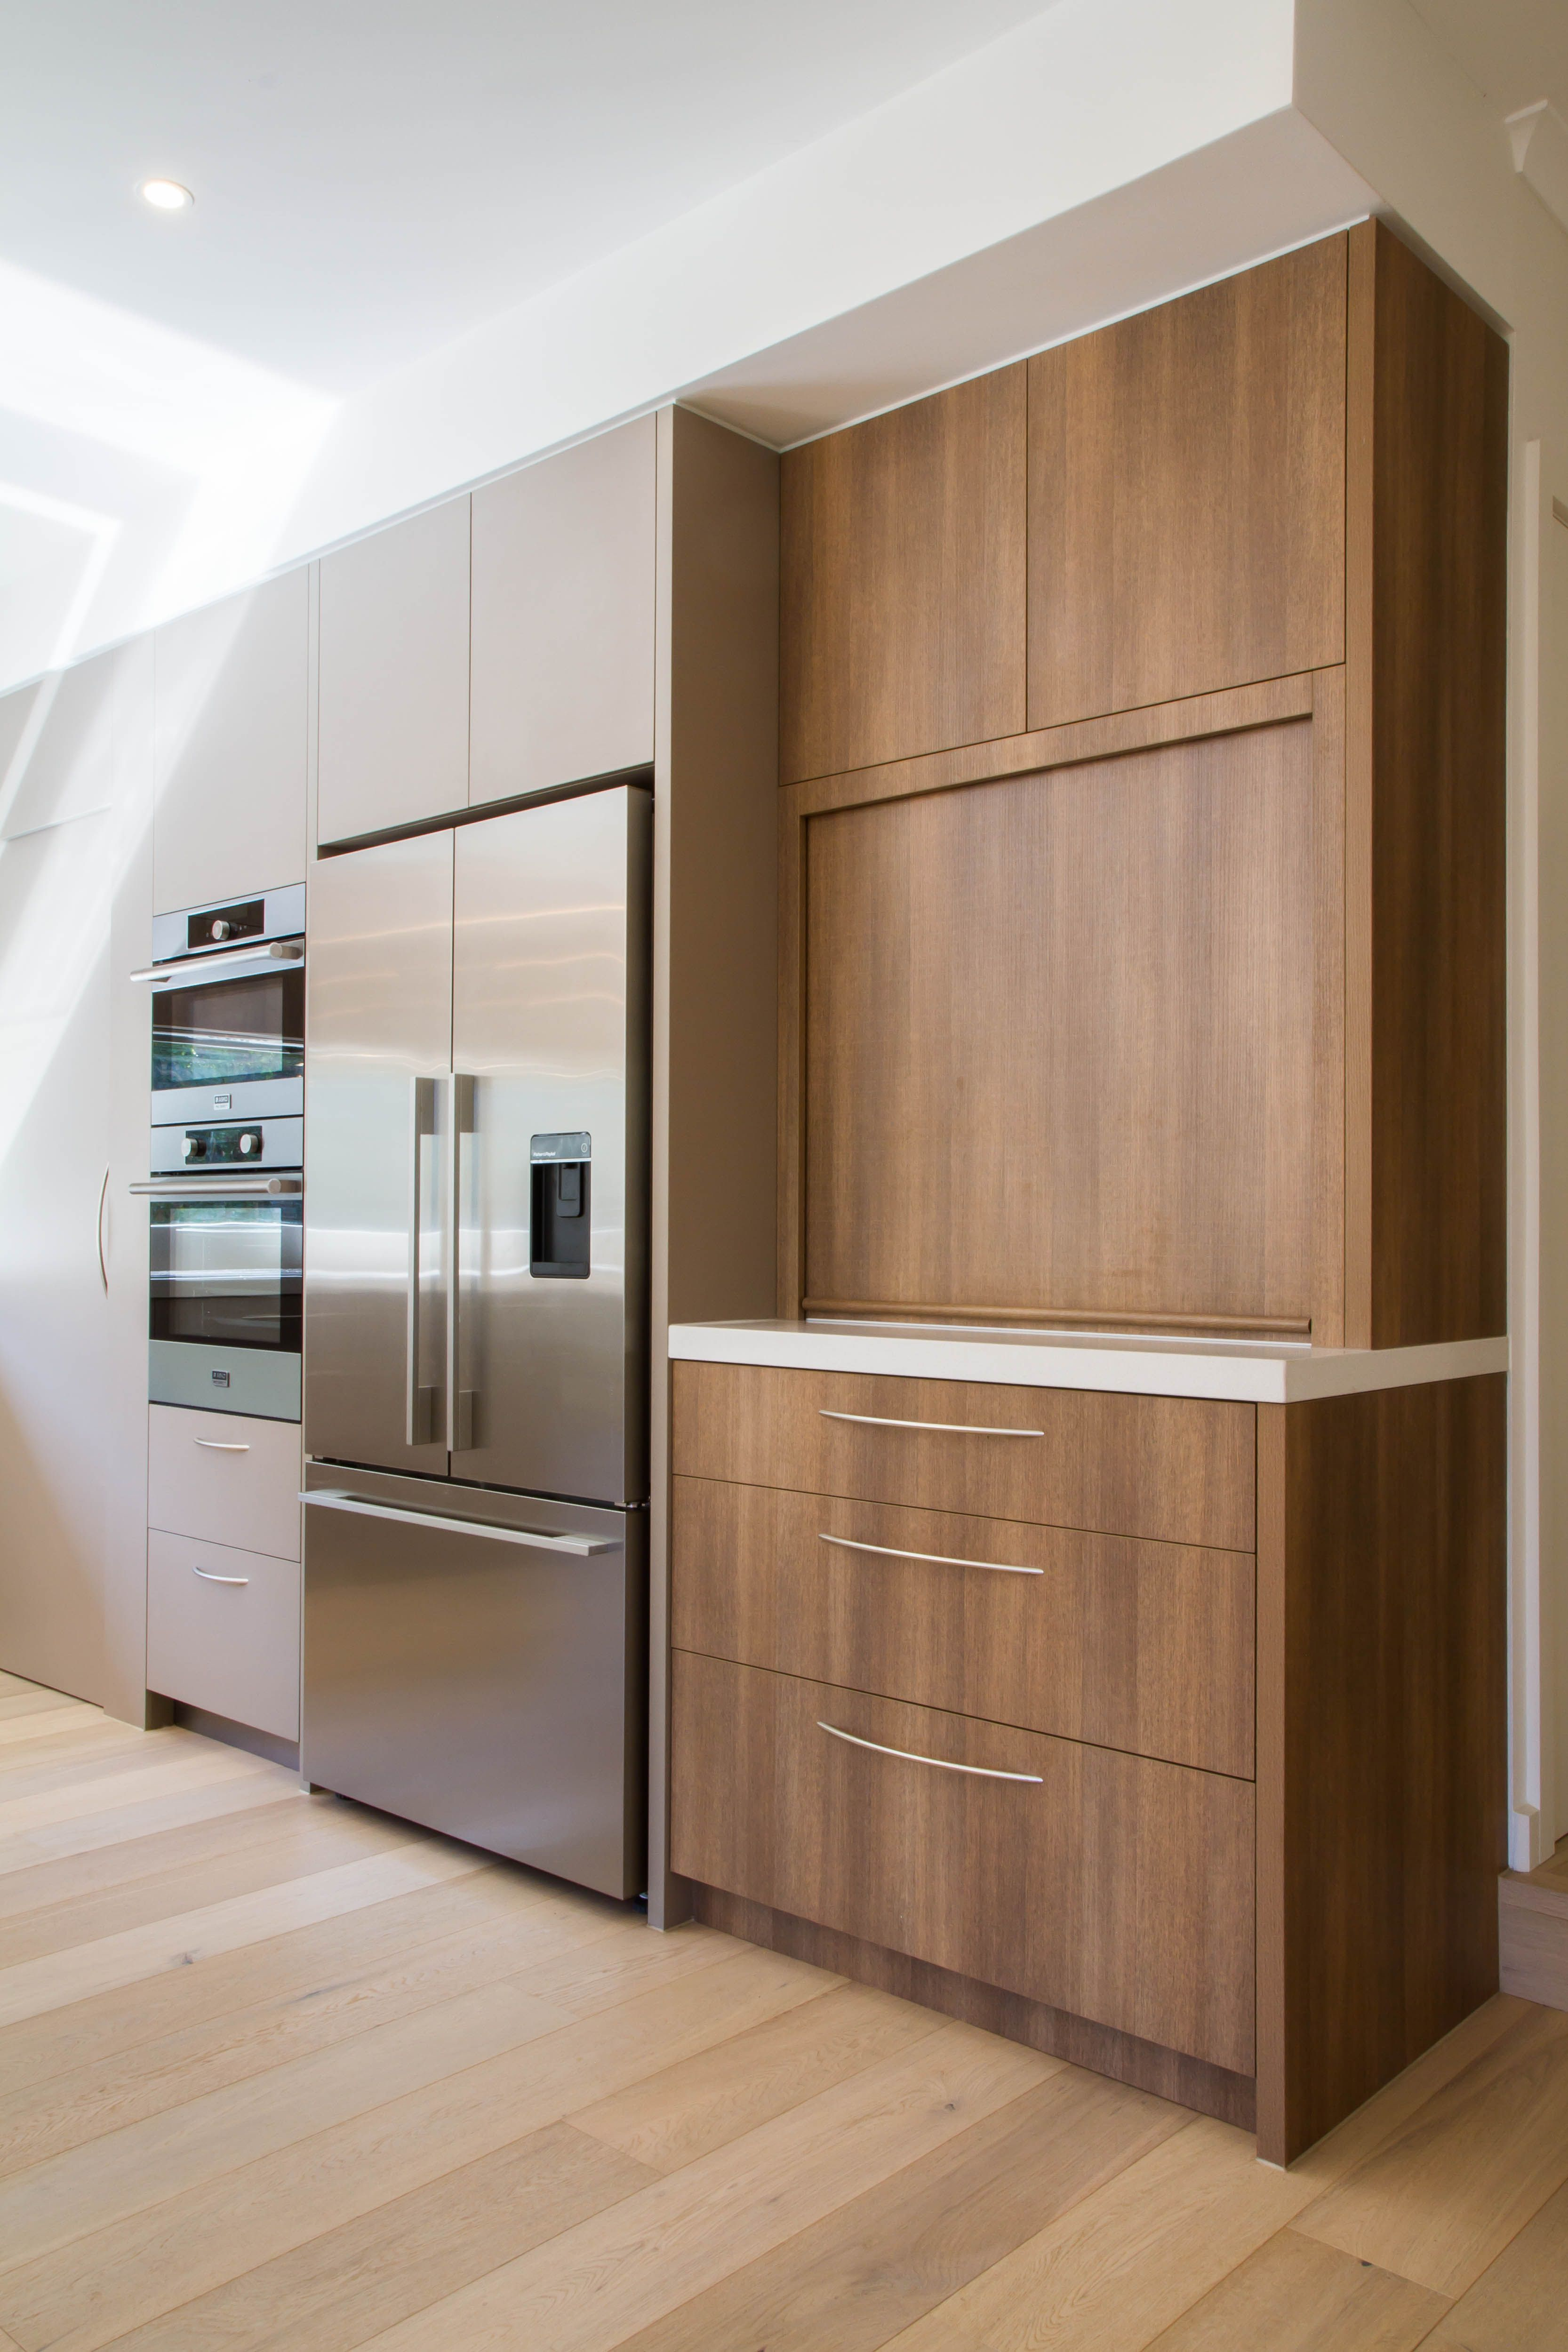 Large modern contemporary kitchen in warm tones